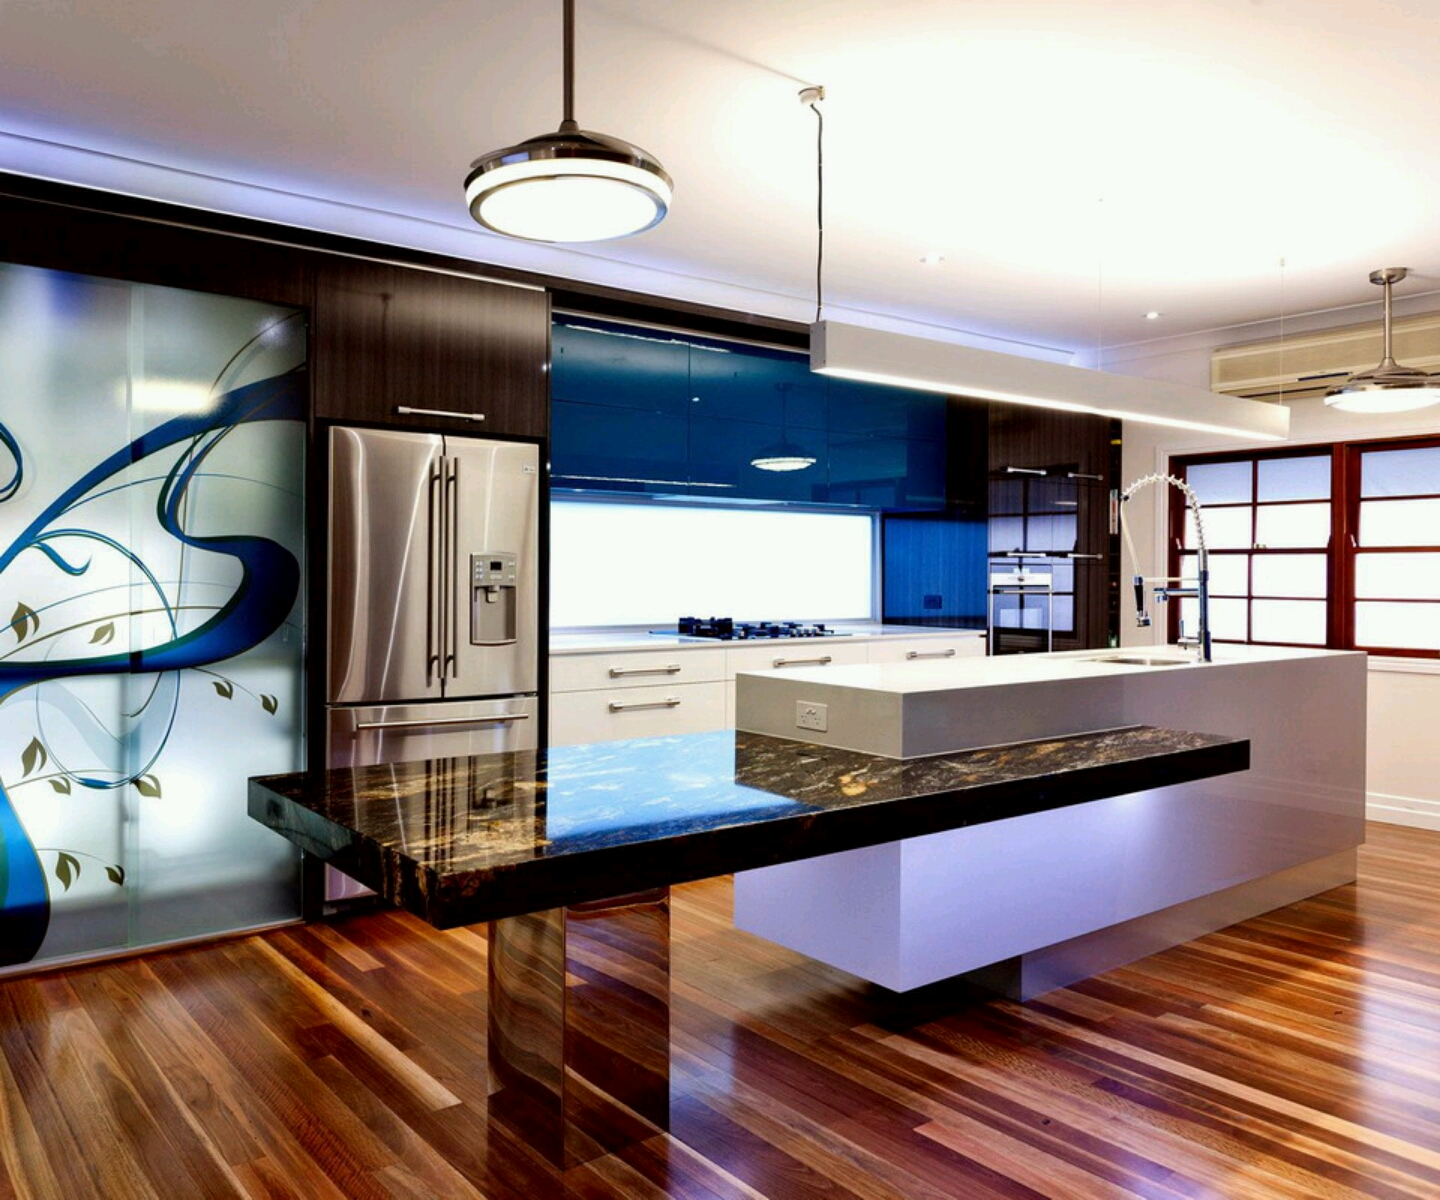 Home Interior Design Ideas For Kitchen: New Home Designs Latest.: Ultra Modern Kitchen Designs Ideas